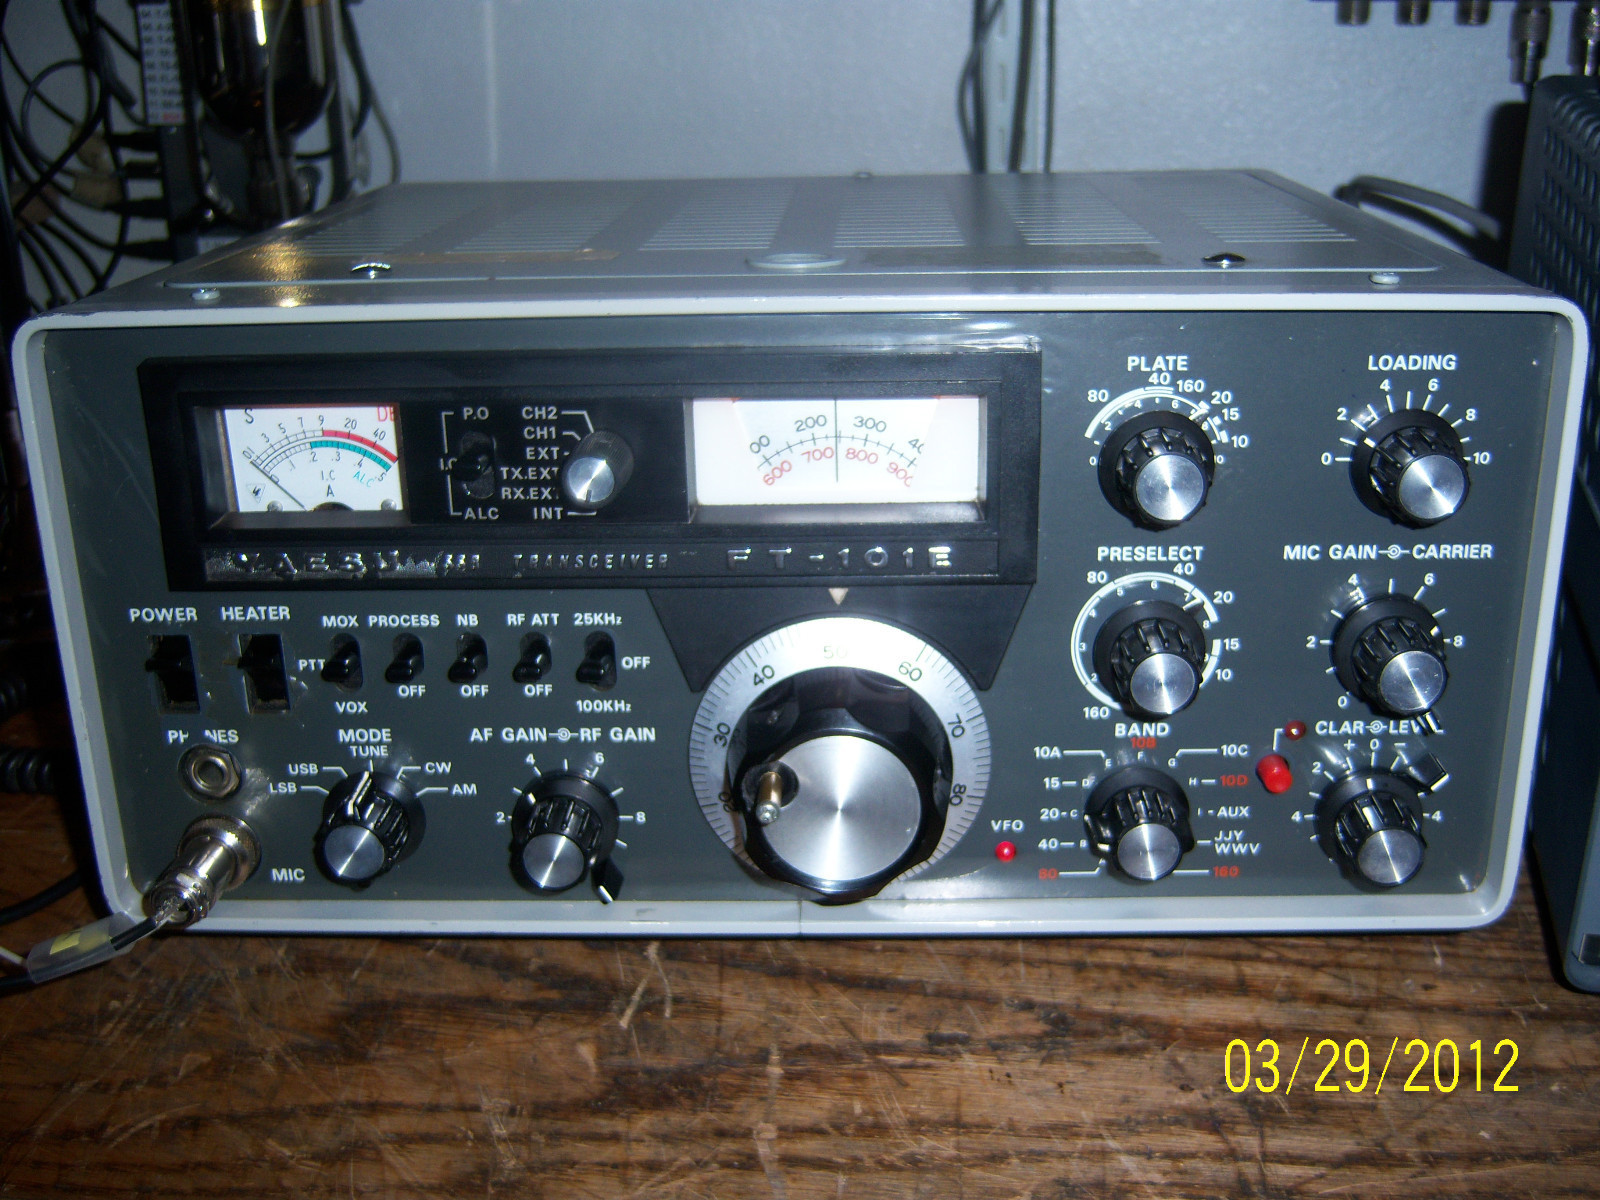 Shortwave Radioqsl Cards together with 422 1 also Vintage Colored Radio together with  also Auto Dine 2009. on old radio electronics